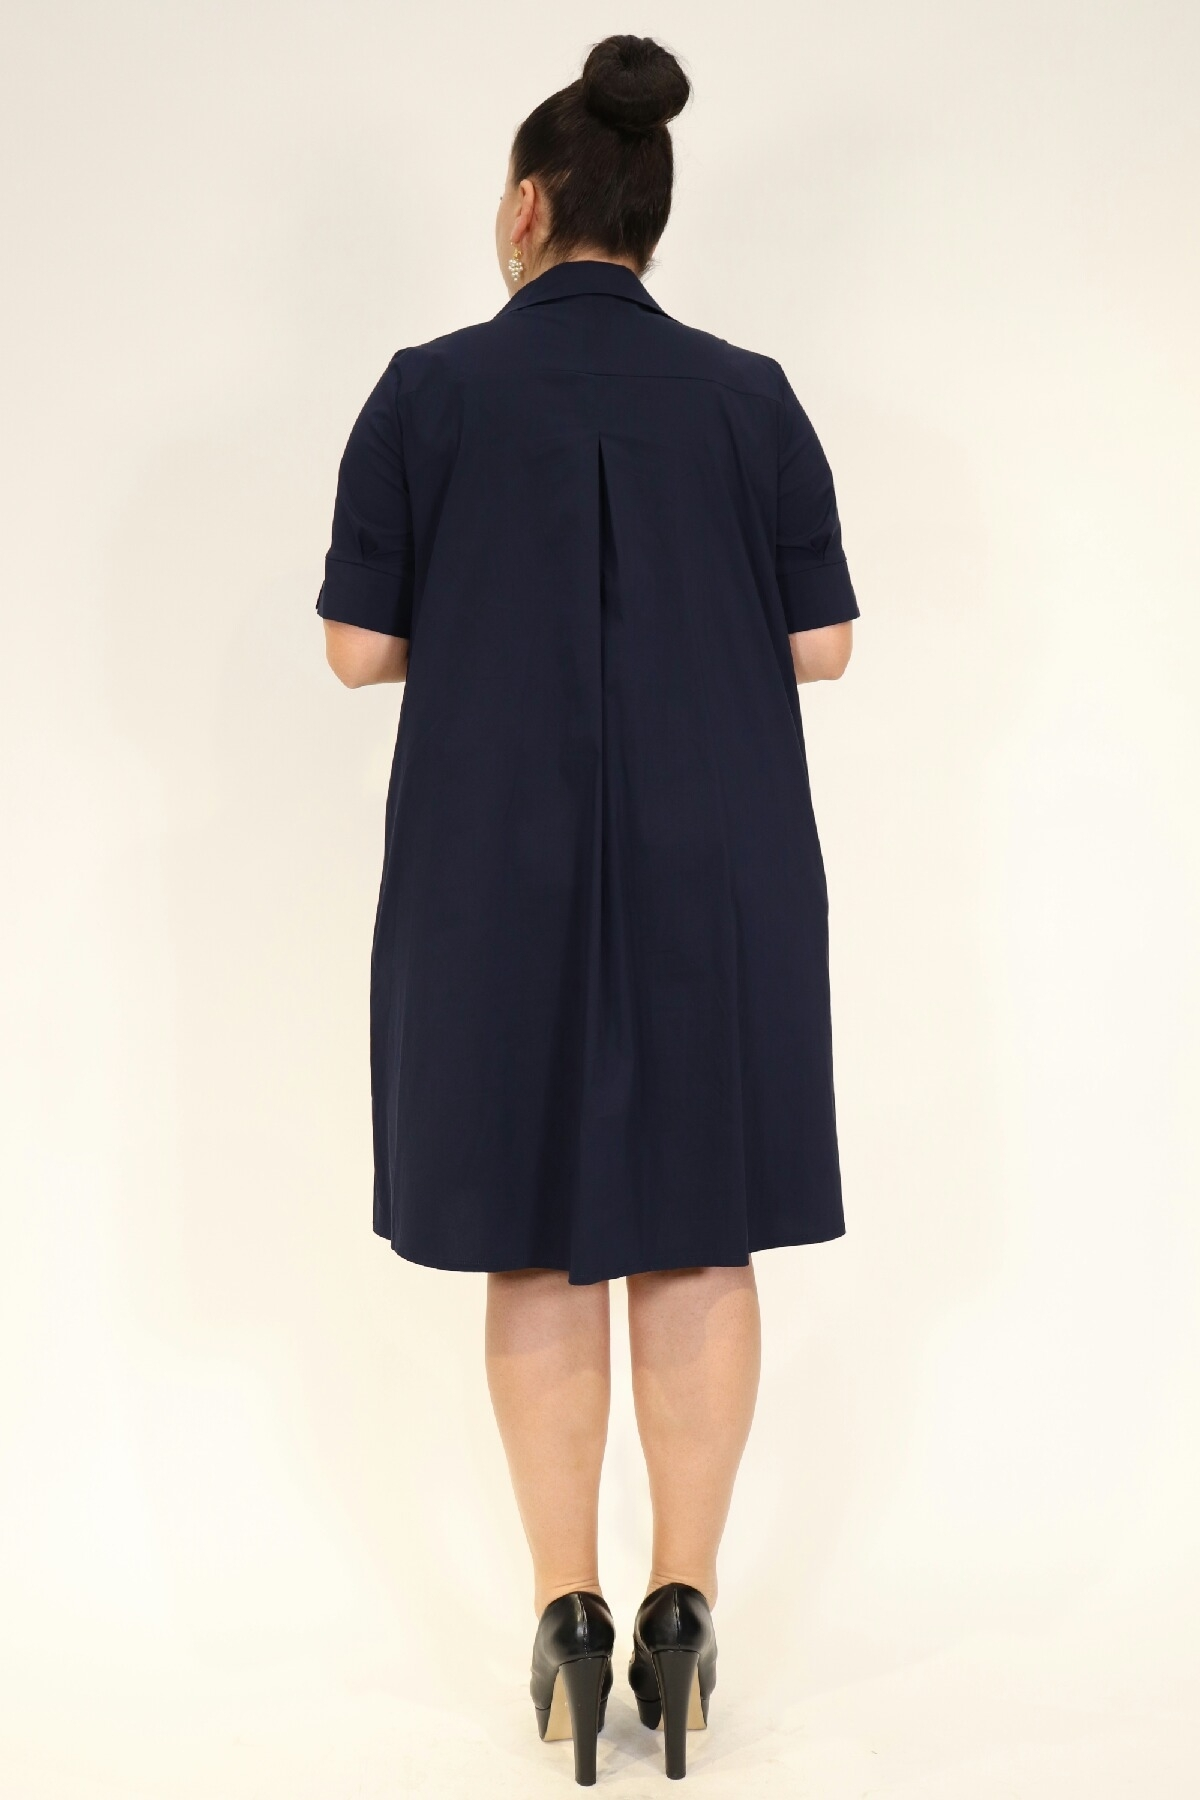 Short sleeve dress with flared button up dress with short sleeves and pockets